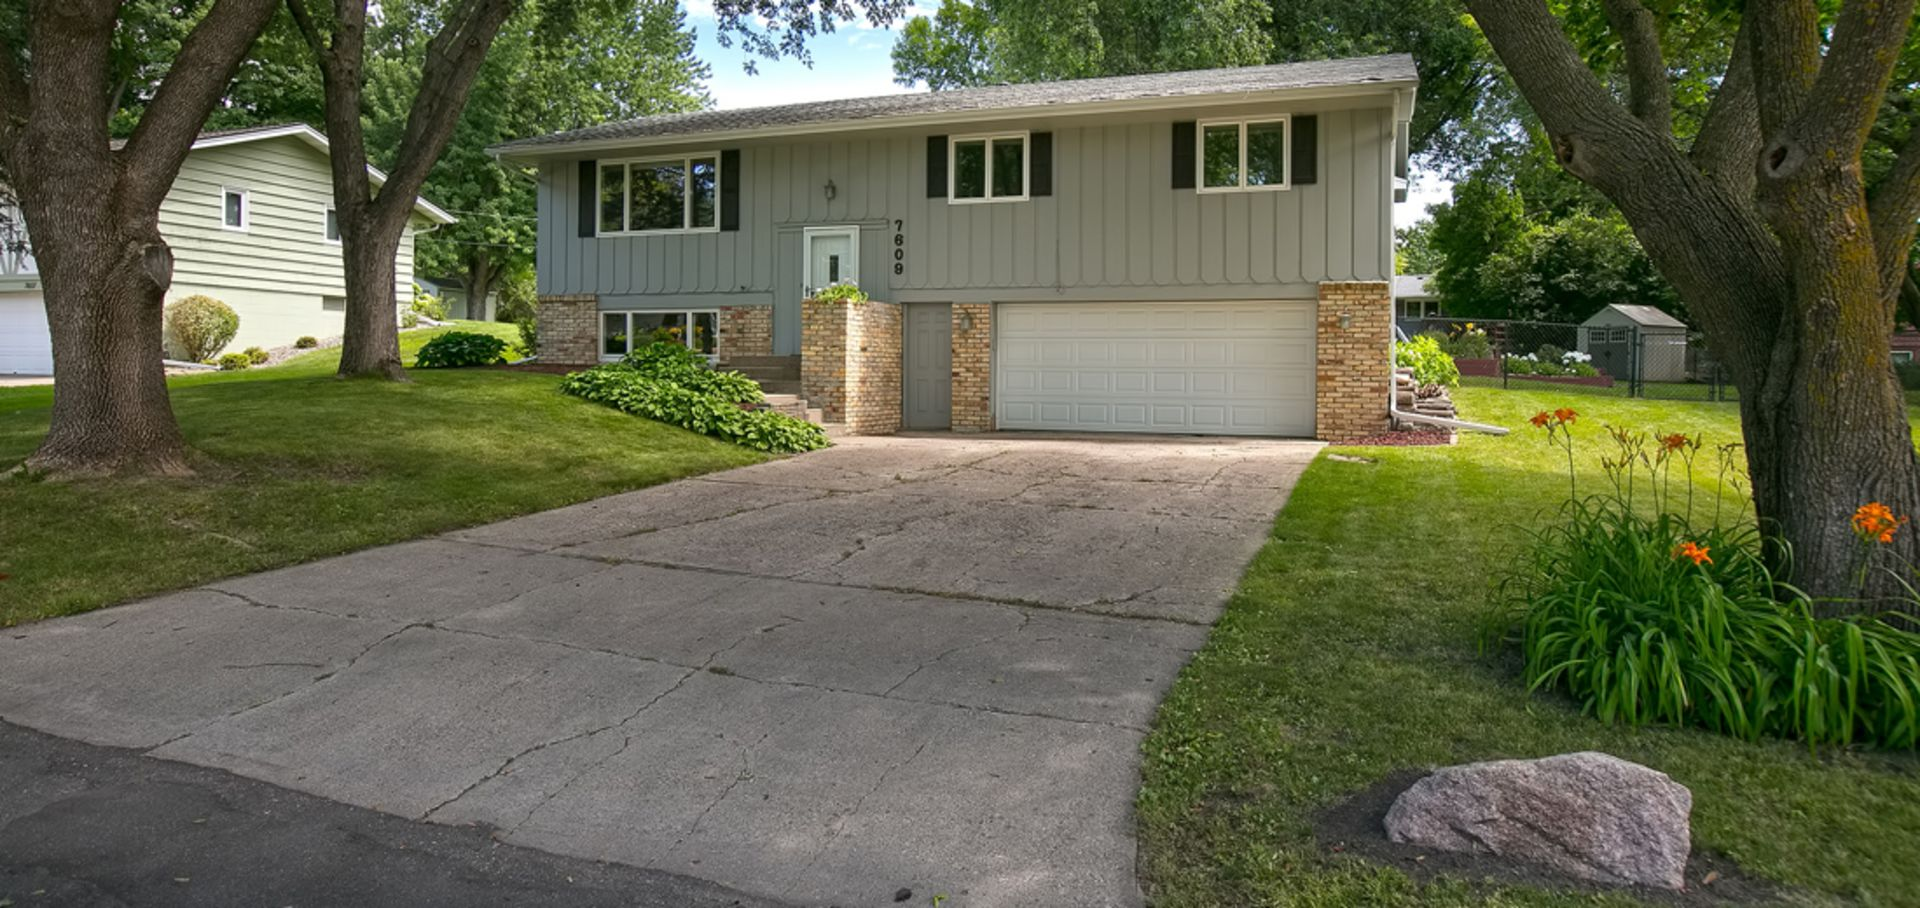 Quiet and Peaceful Home in Chanhassen